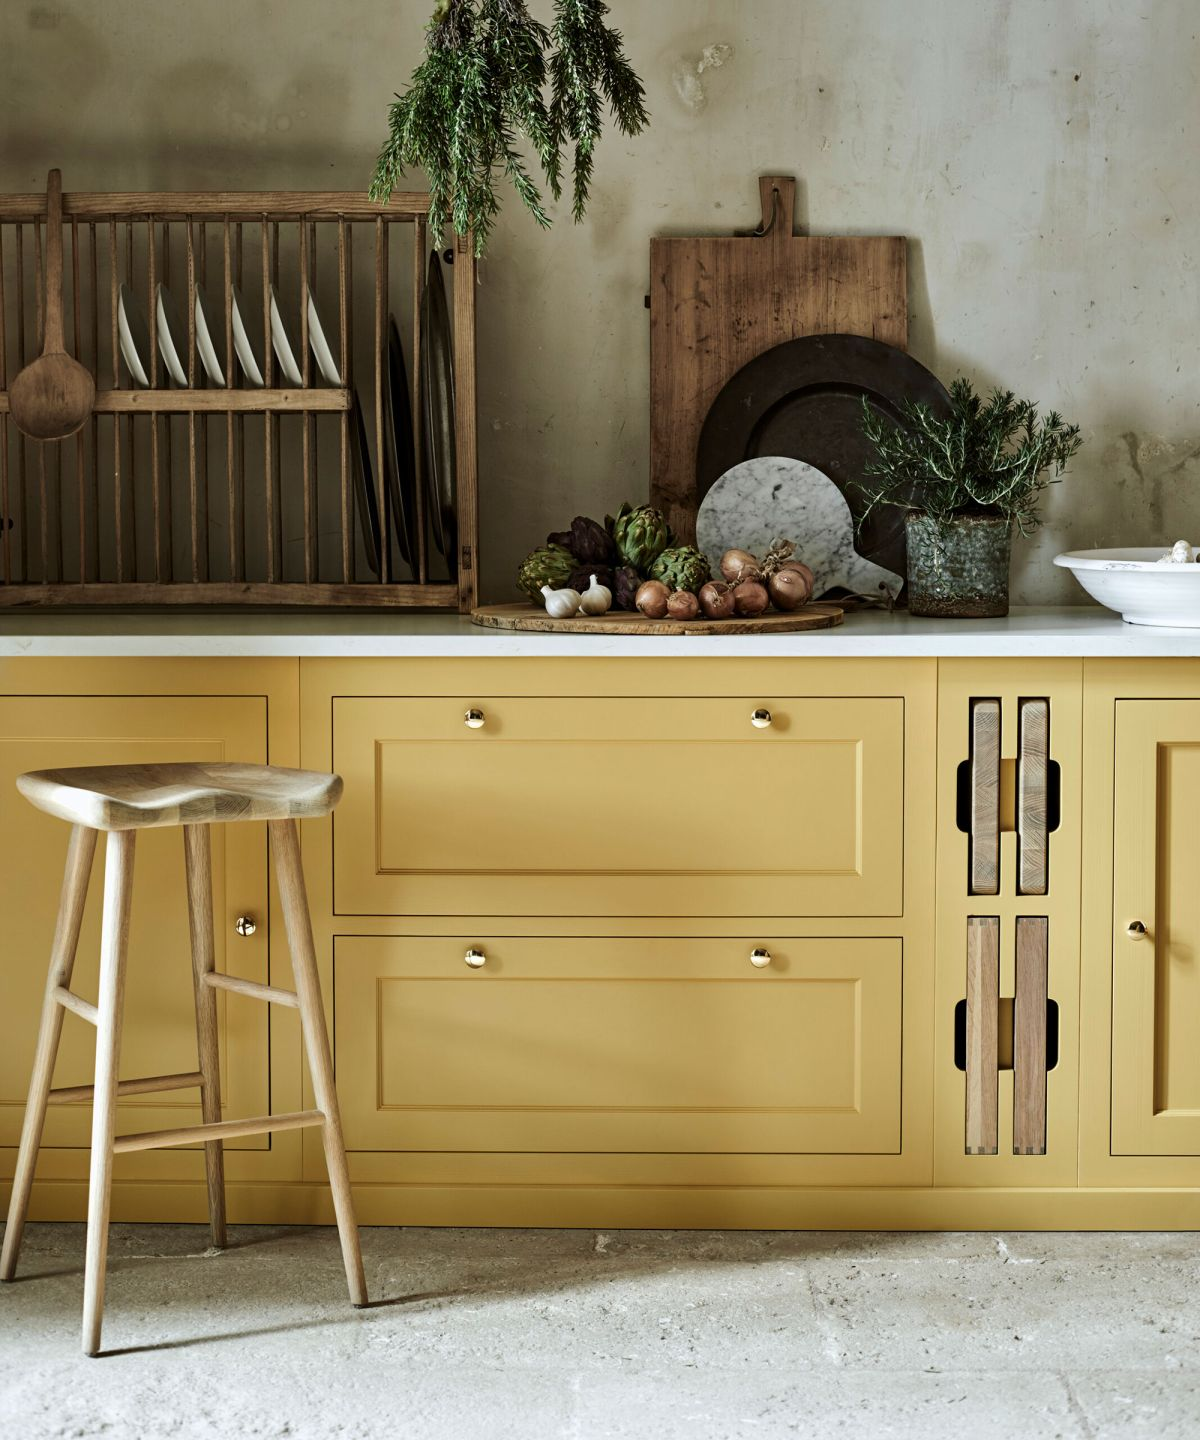 Painted kitchen cabinet ideas – finishes to make your space stylish